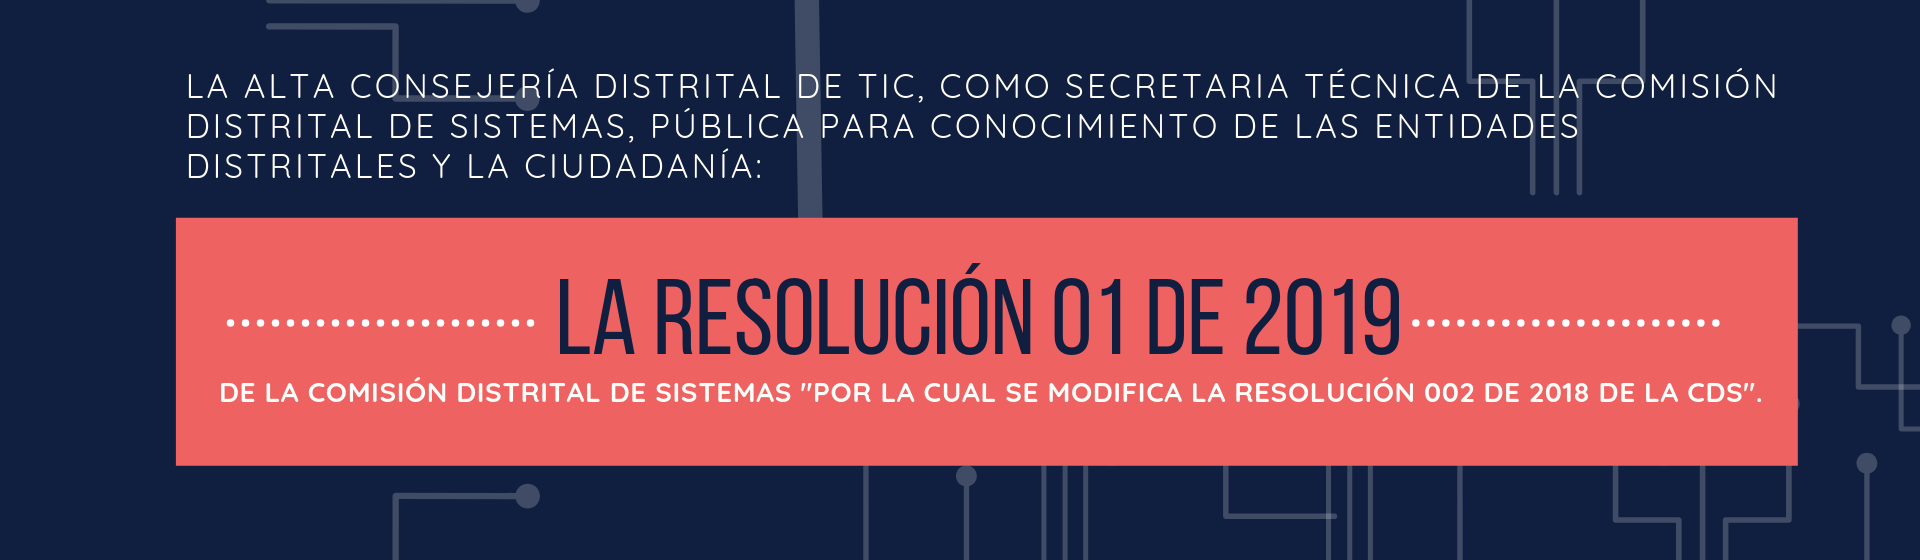 Resolución 01 de 2019